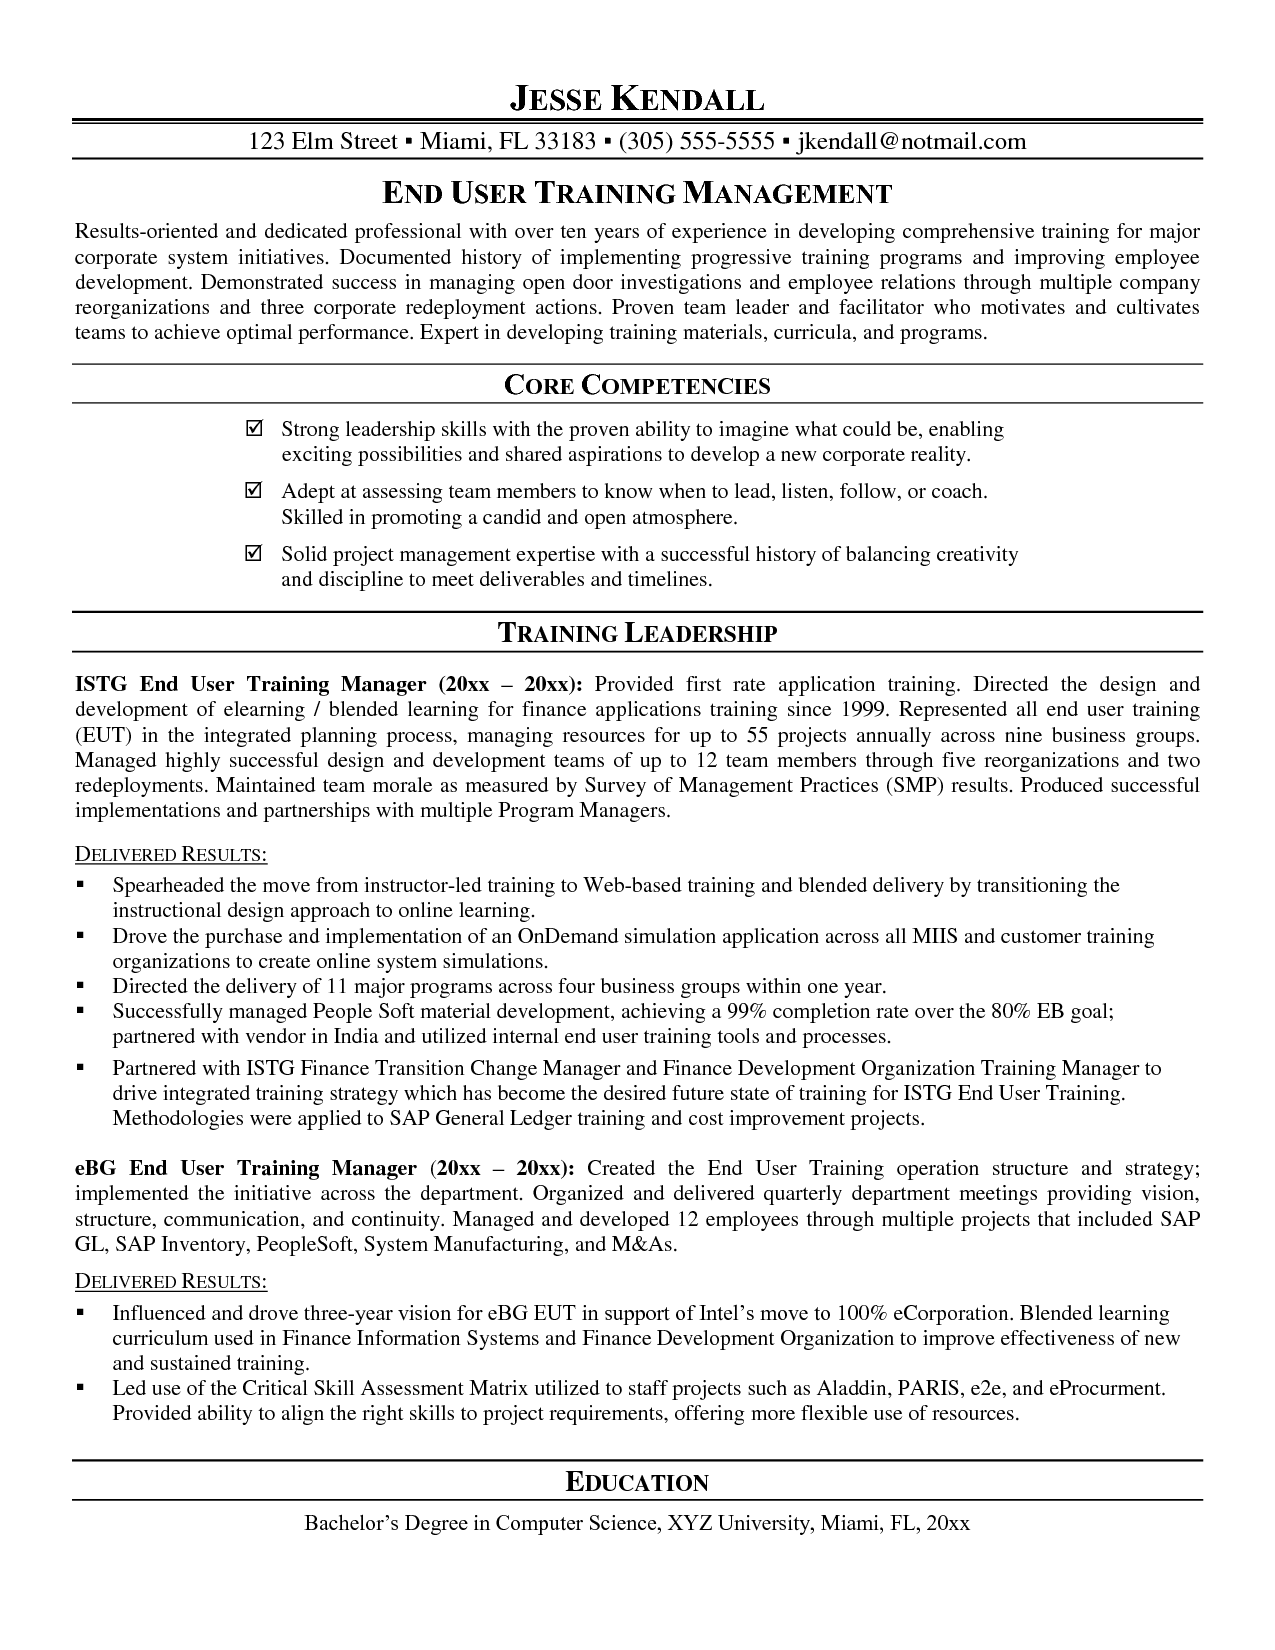 Training Manager Resume Http Www Resumecareer Info Training